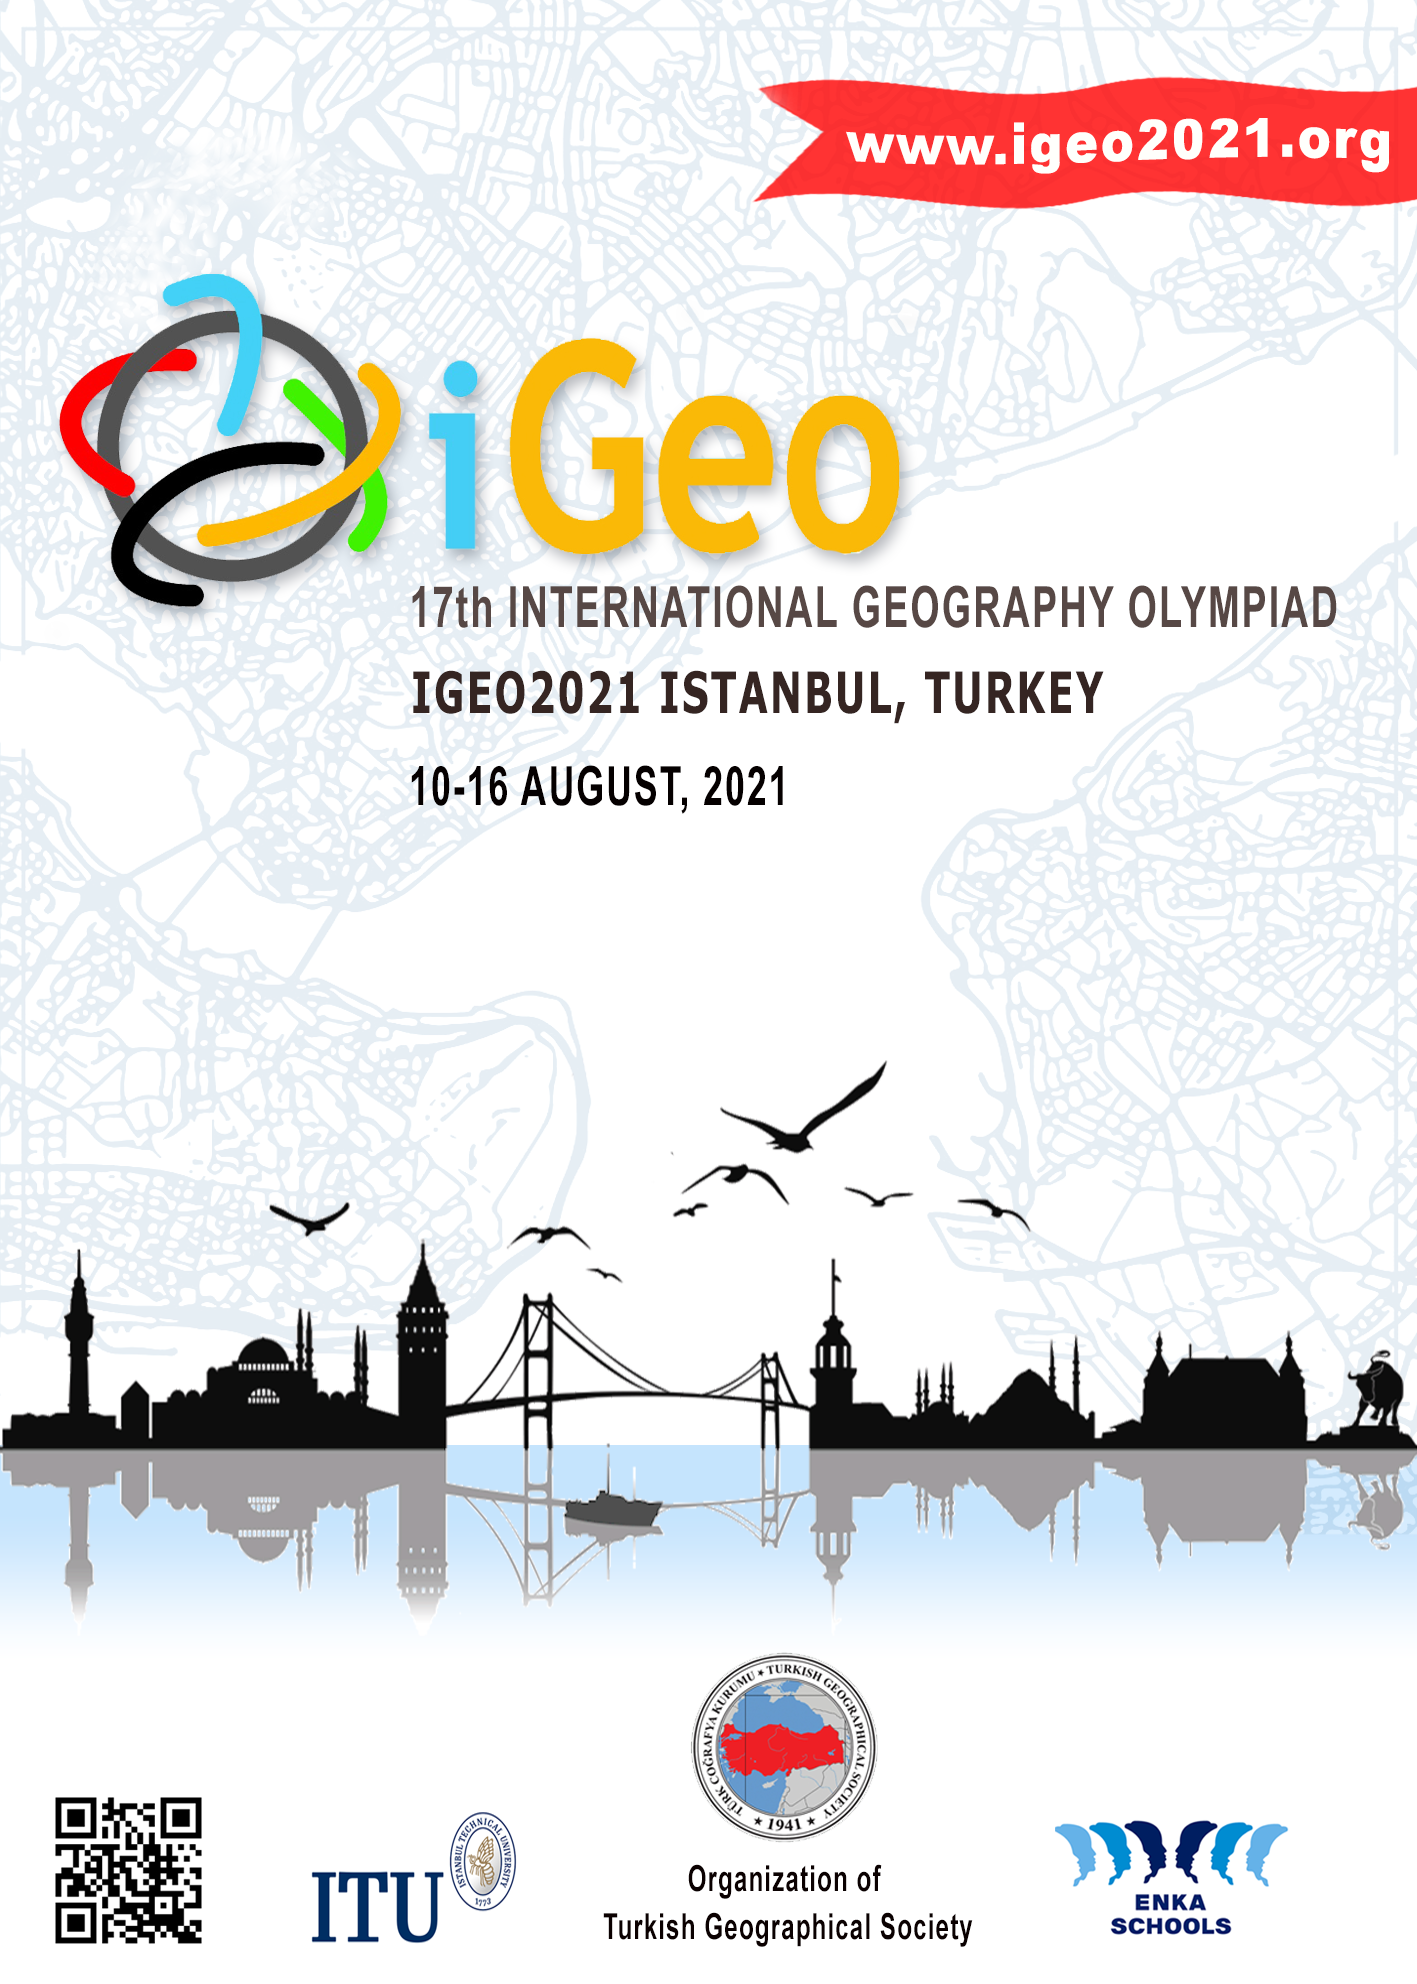 iGeo2021 OFFICIAL INVITATION LETTER